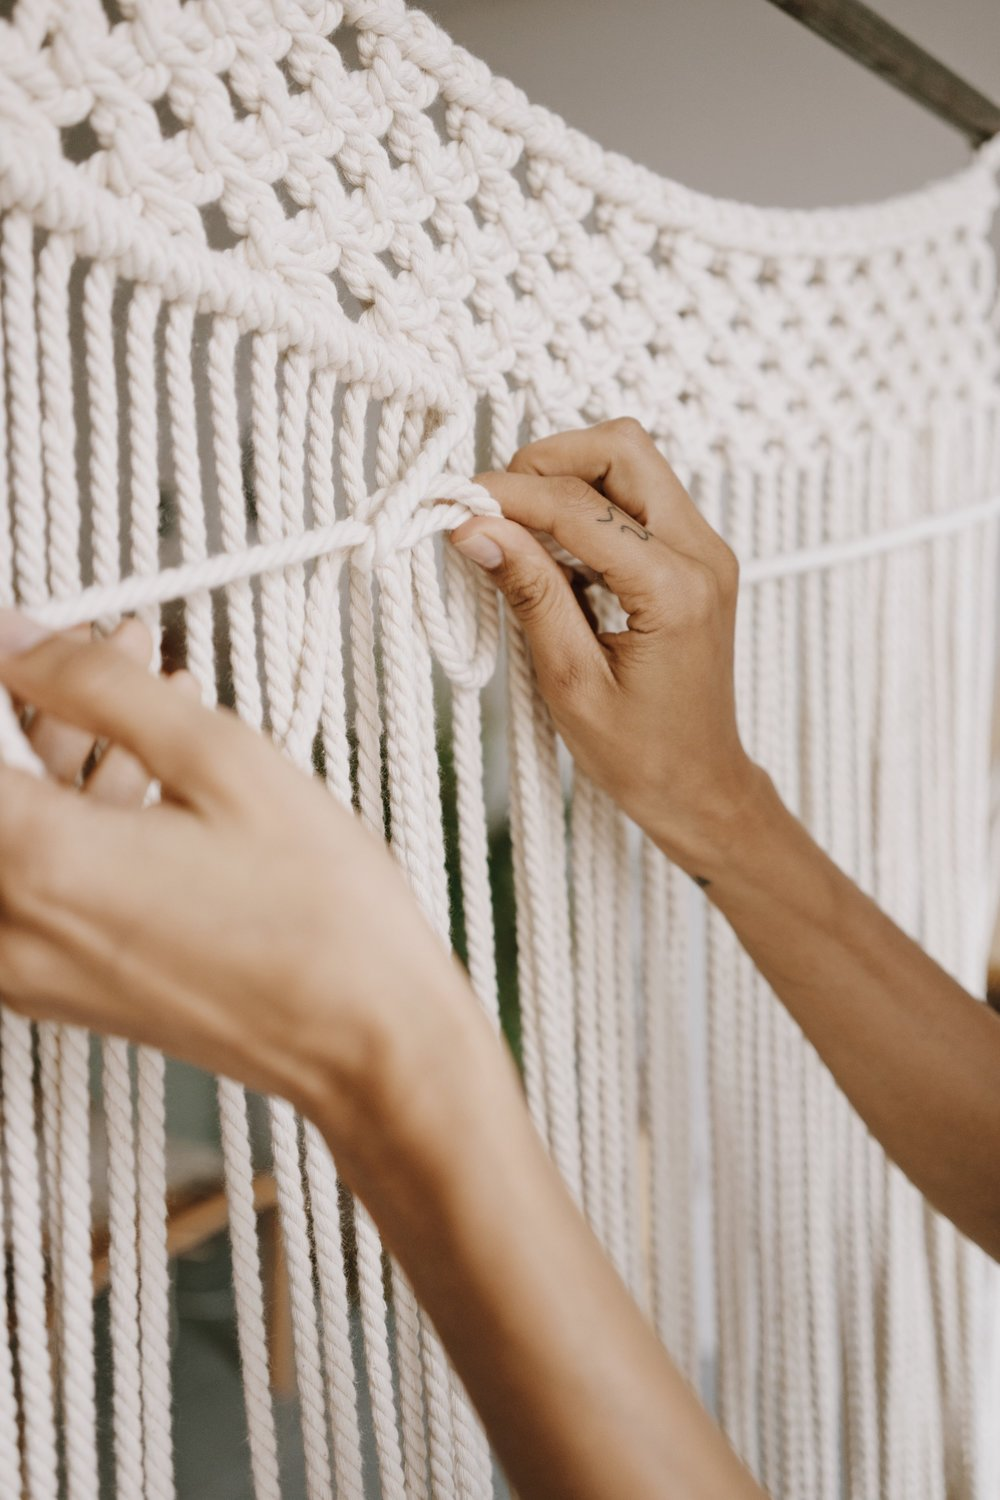 ABHA weaves together people, community and craft. We offer private and group Macrame workshops from our studio in Barcelona. -